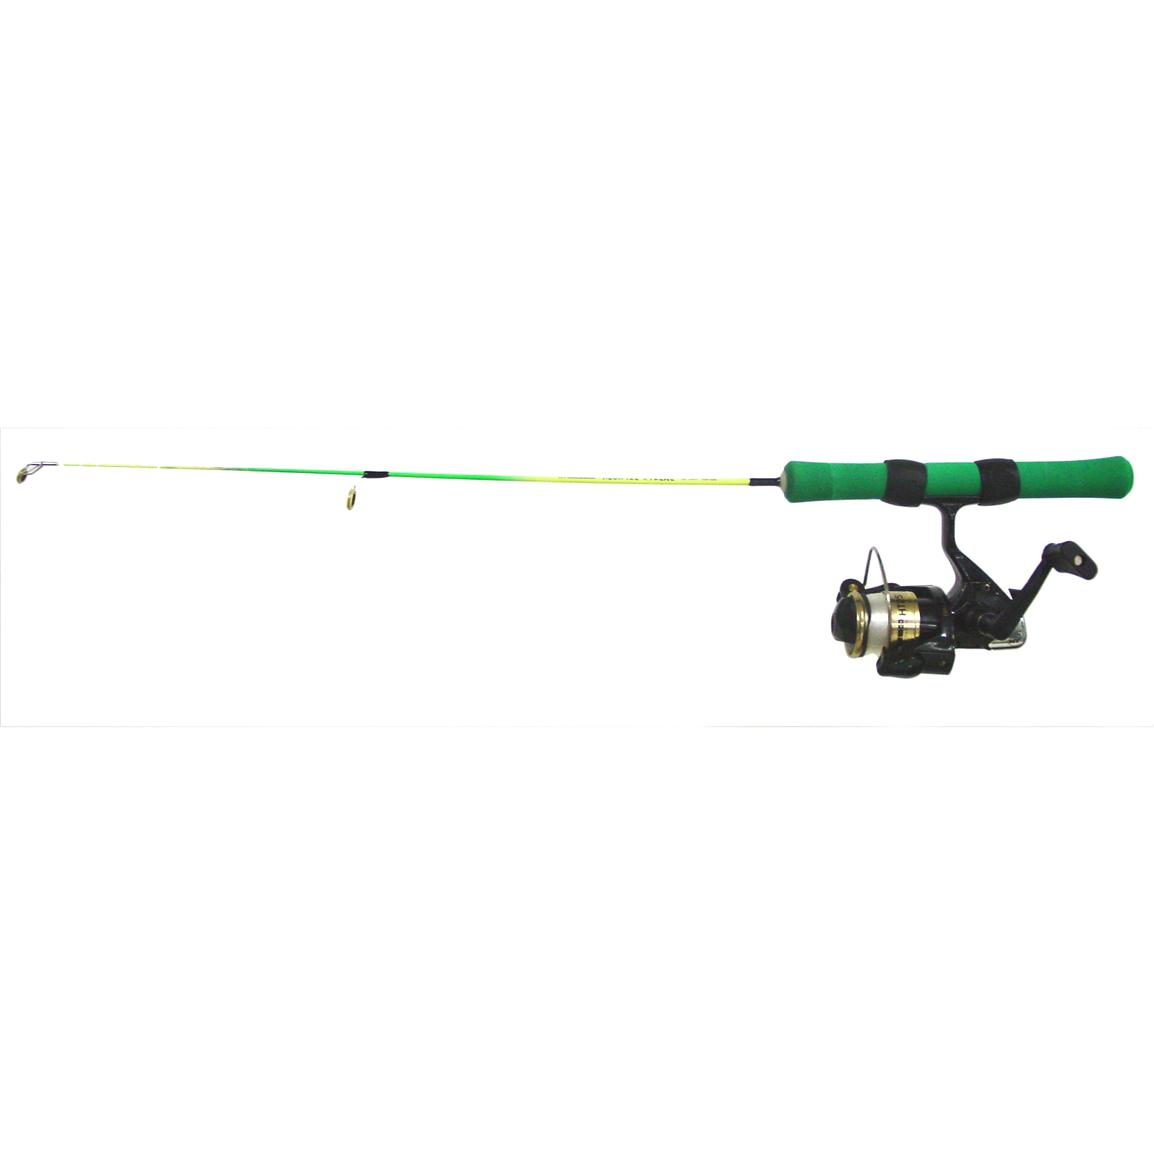 "25"" Neon Extreme Medium or Light Action Ice Fishing Rod Combo, Green / Chartreuse"